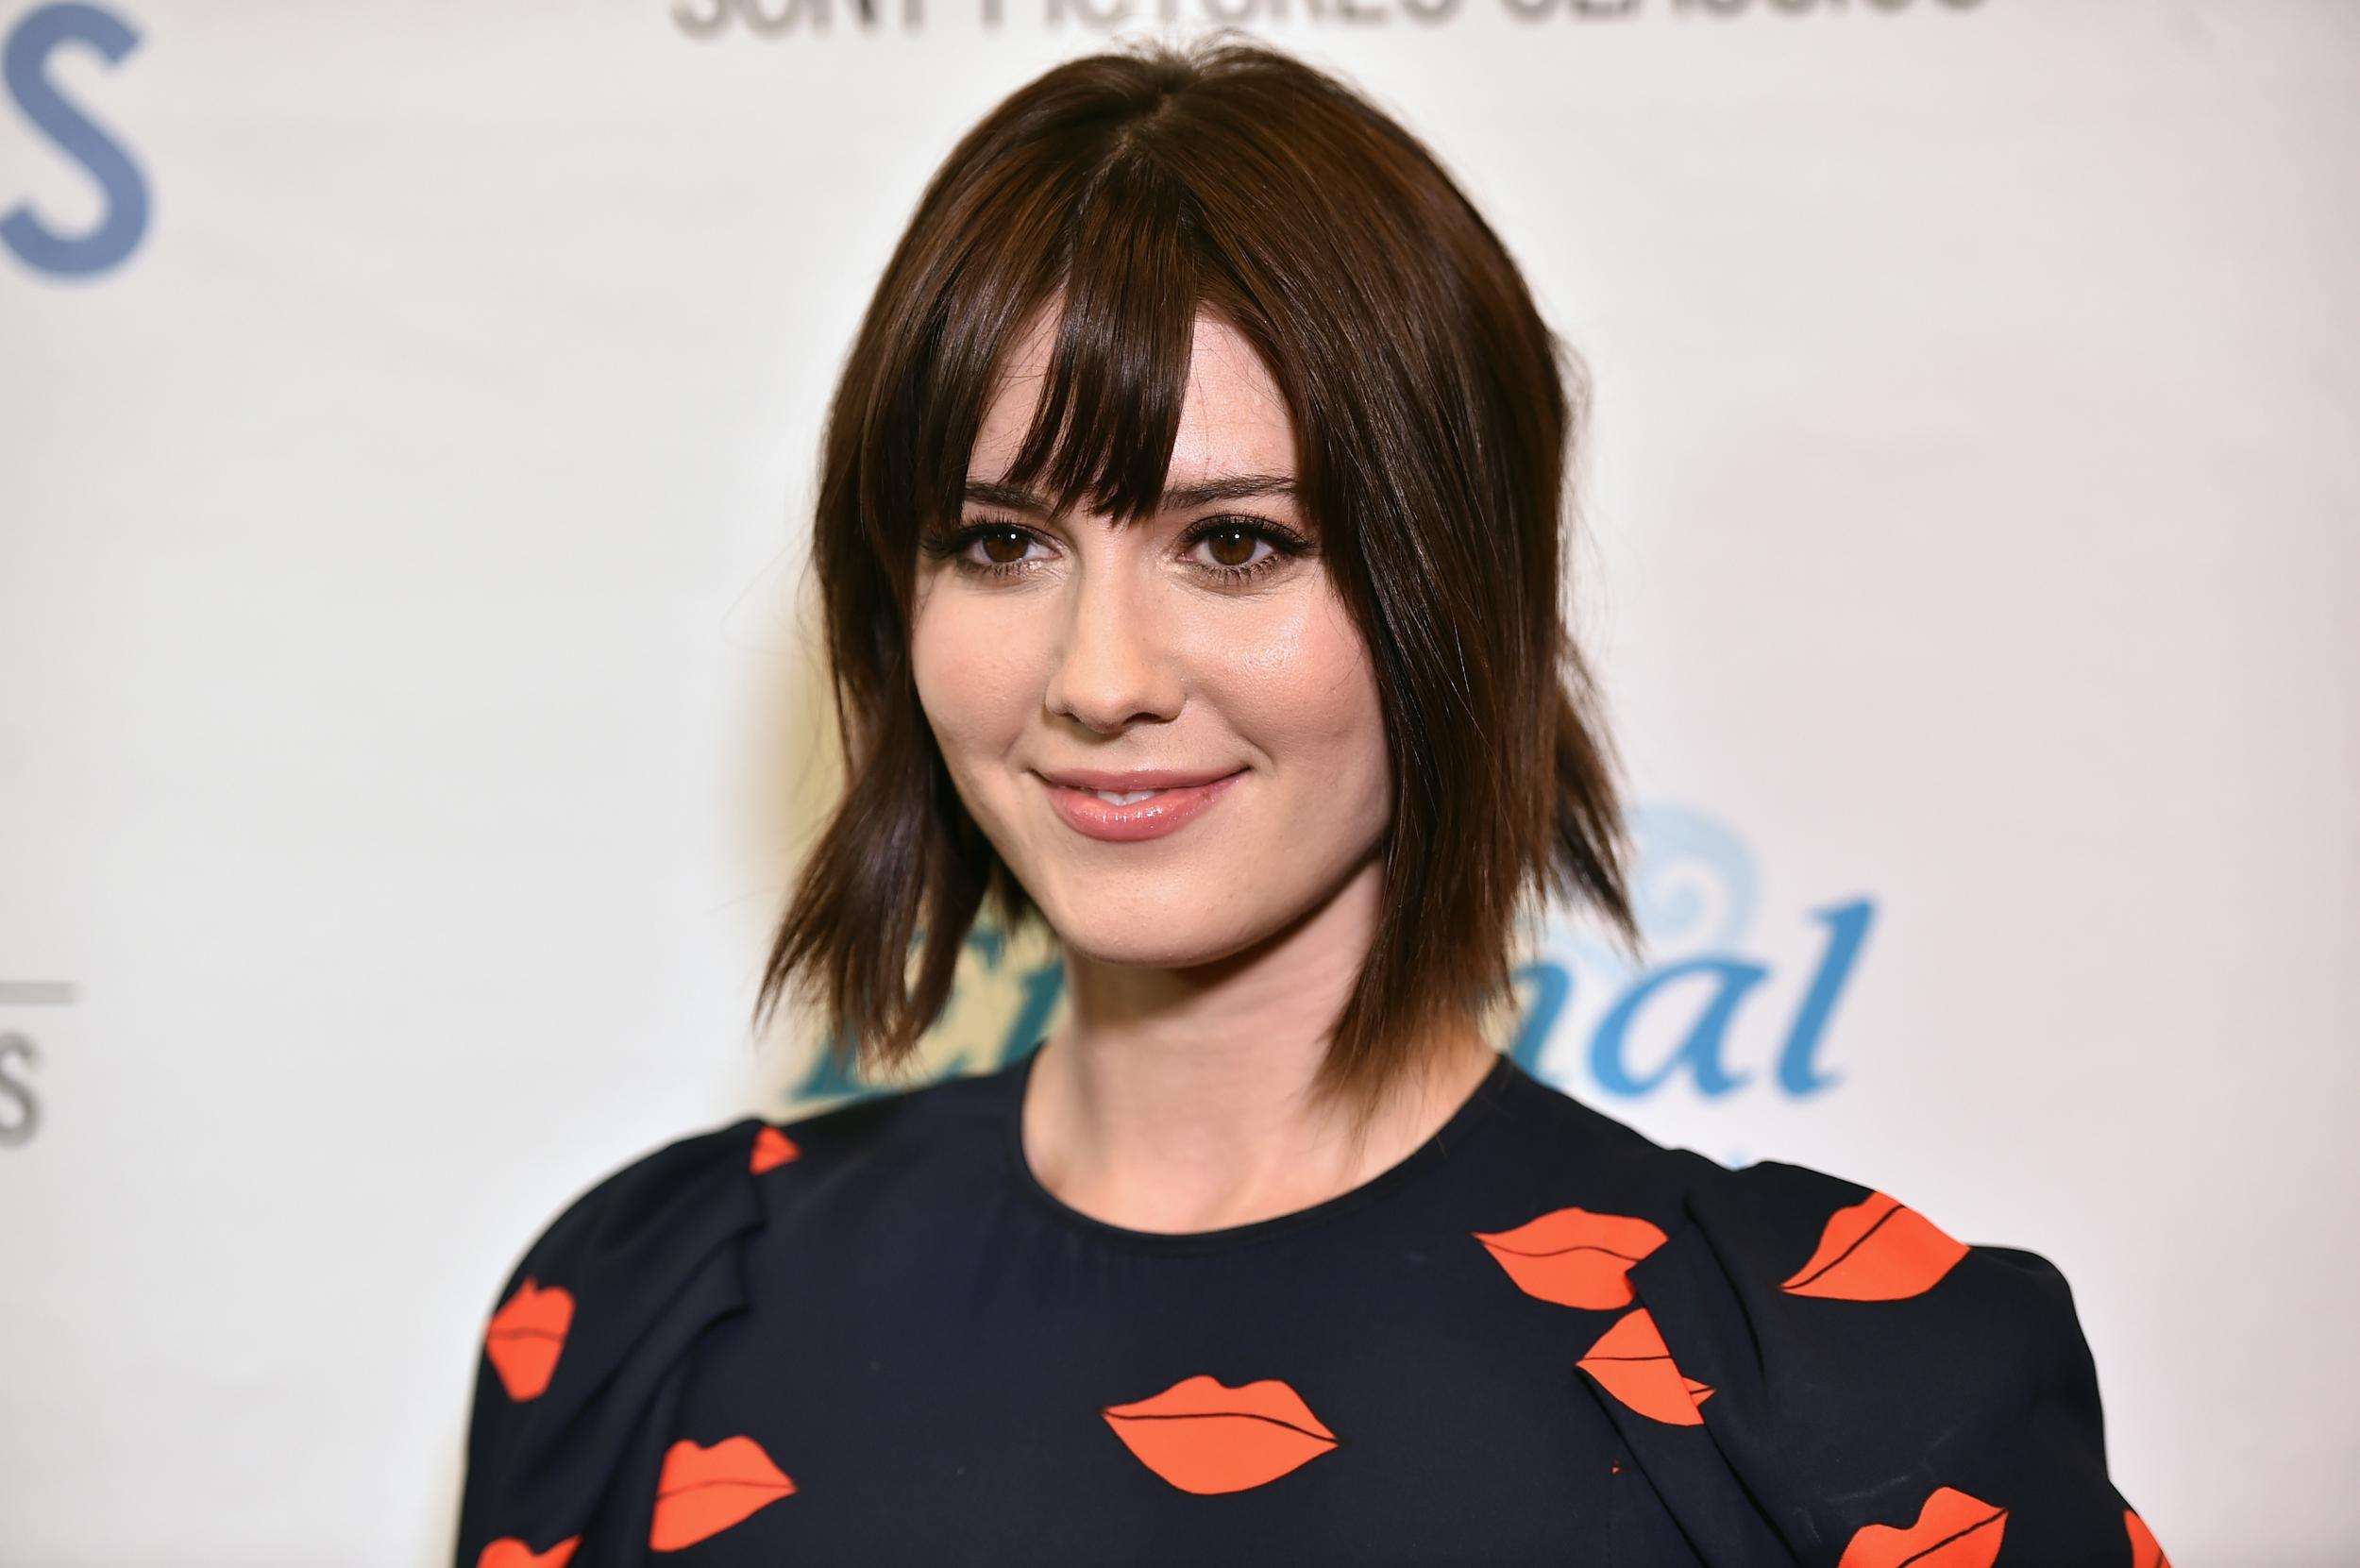 Mary-Elizabeth-Winstead-Wiki-Biography-Age-Height-Weight-Profile-Body Measurement